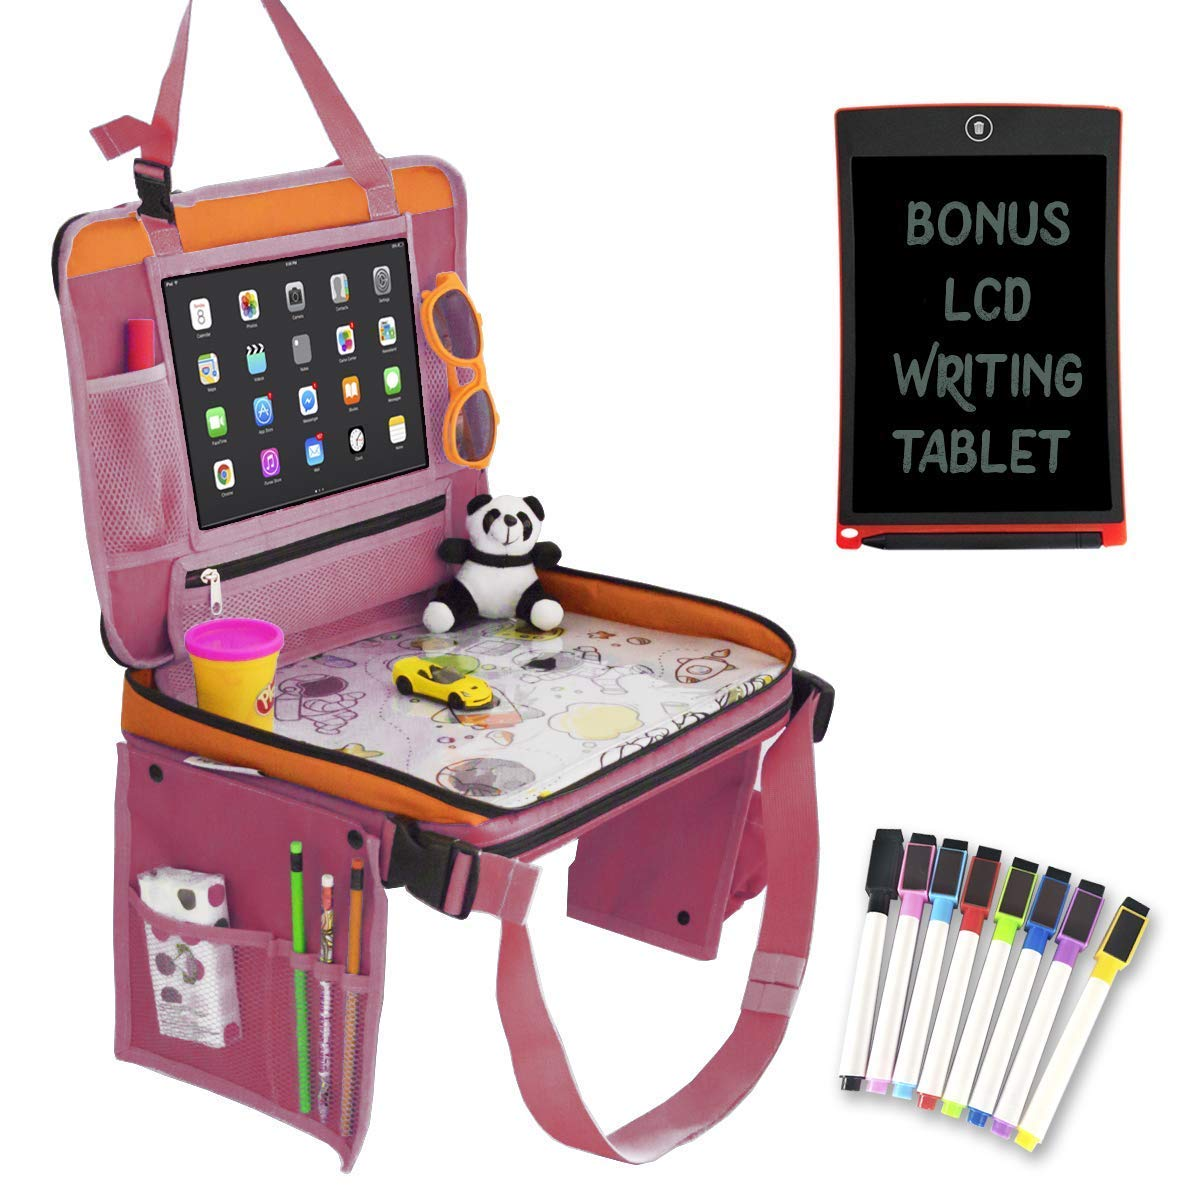 Car Seat Organizer for Kids Travel Tray Bundle with LCD Writing Tablet-Kids Travel Activities Set | Car Seat Organizer with Tablet Holder, Kids Travel Bag, LCD Writing Tablet,Markers Set (Pink/Blue)